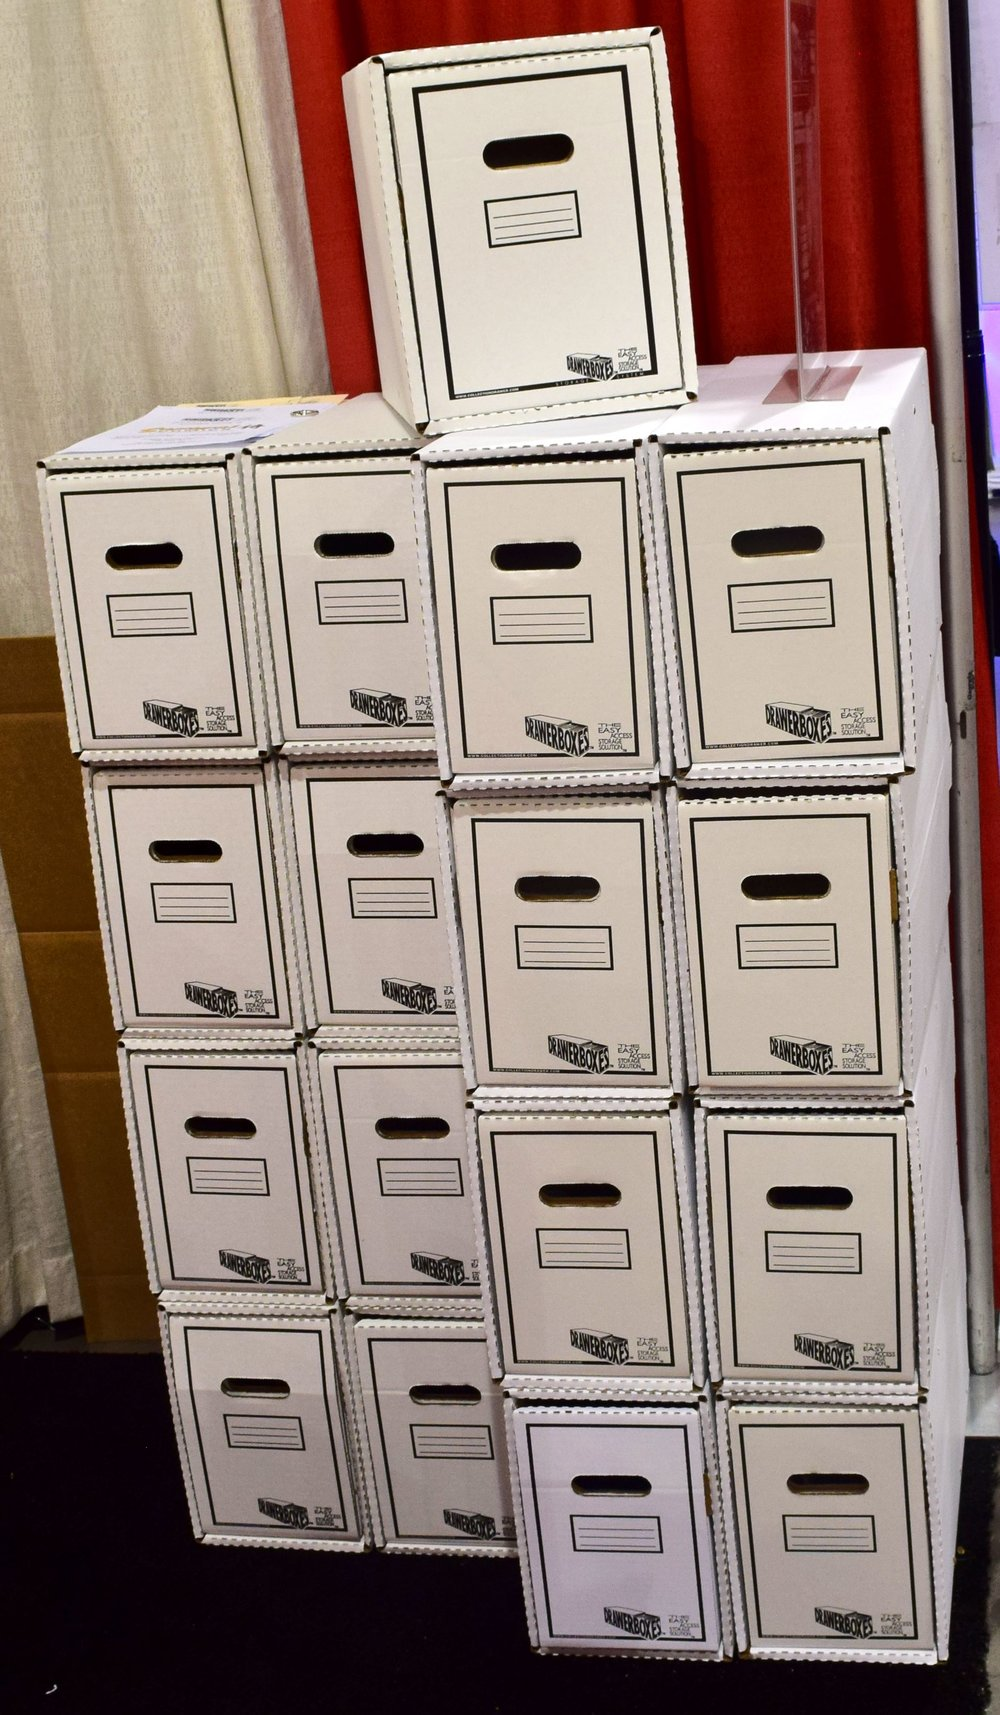 A DrawerBox Storage System floor display at Phoenix Comic Con 2017.